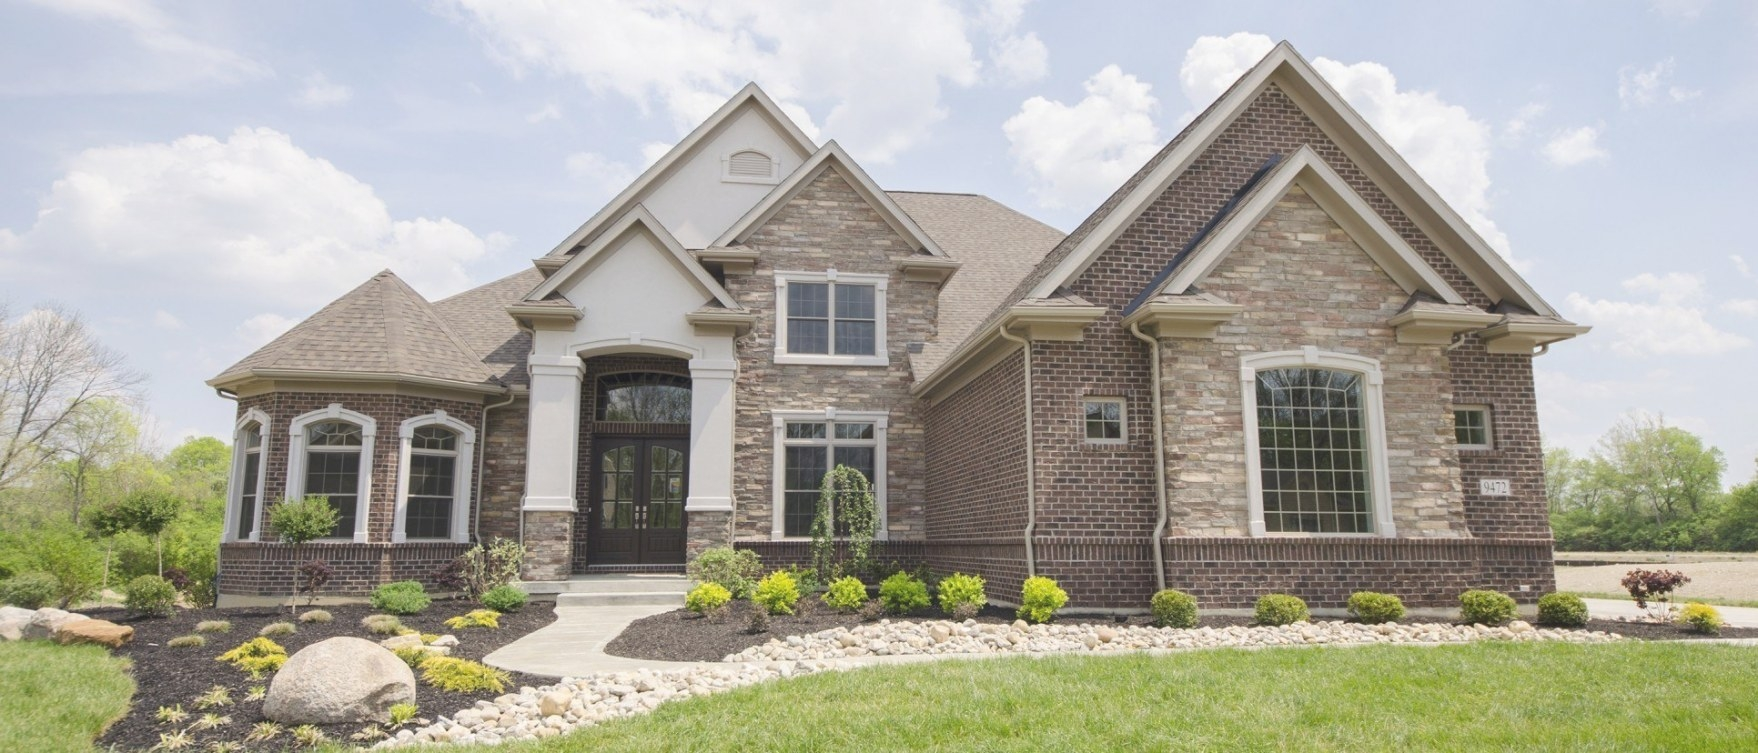 203K Mortgage Loans In Dayton And Cincinnati, Ohio regarding Brick And Stone Homes